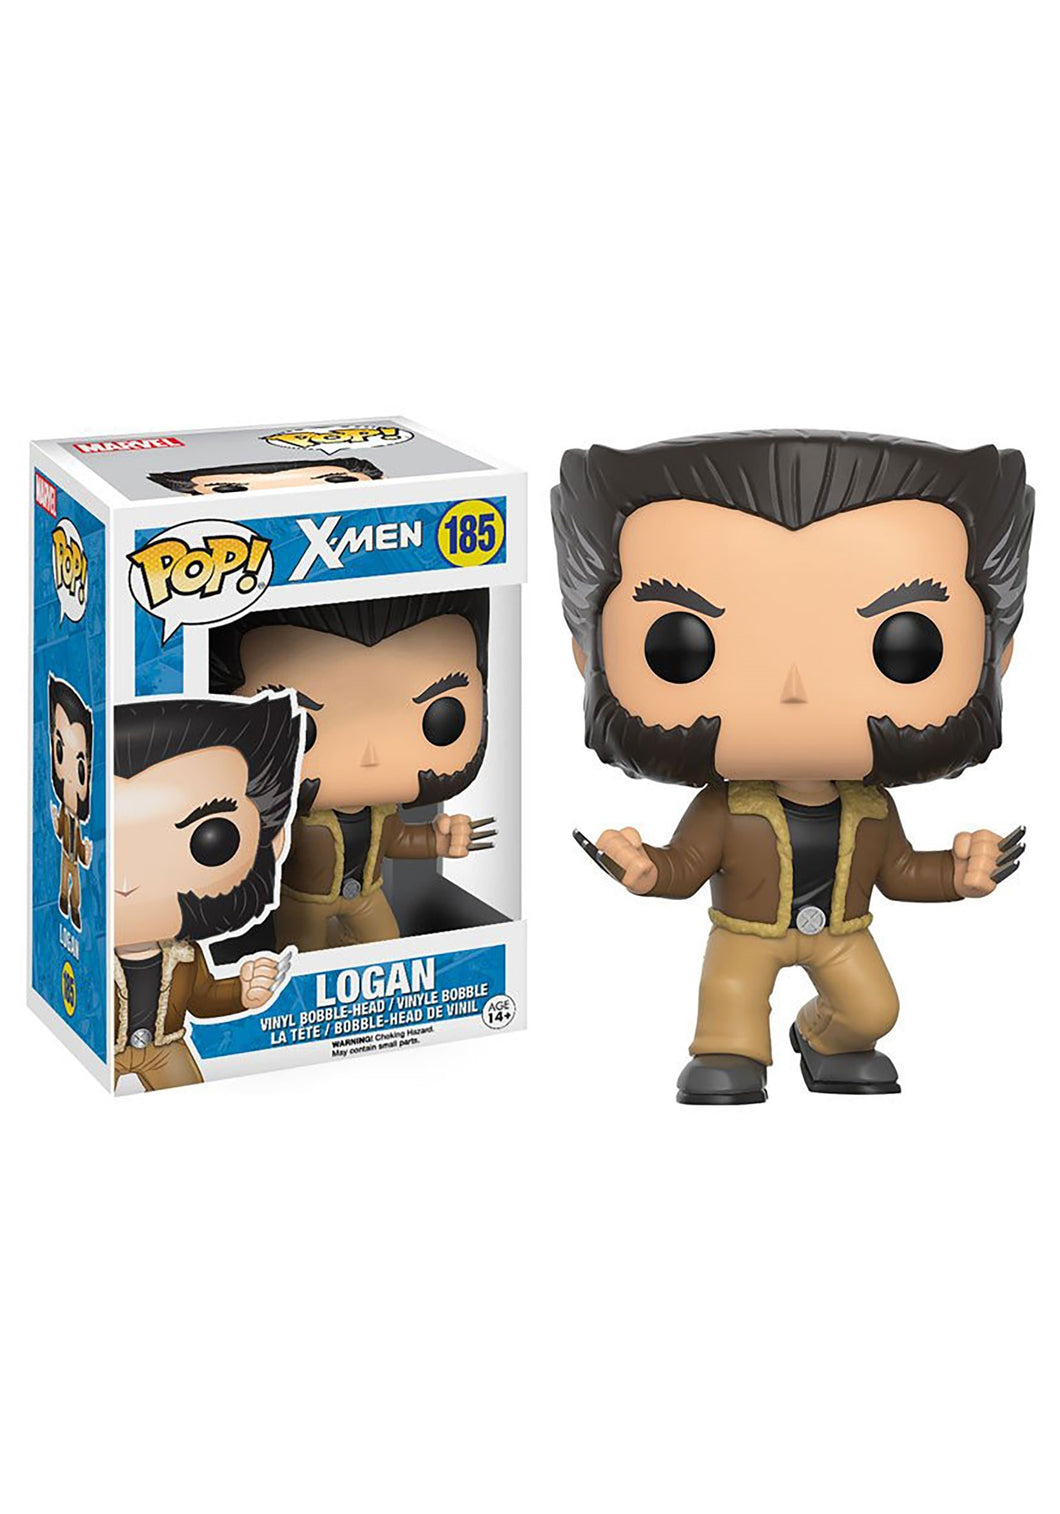 X-MEN LOGAN BOBBLEHEAD FUNKO POP! VINYL FIGURE #185